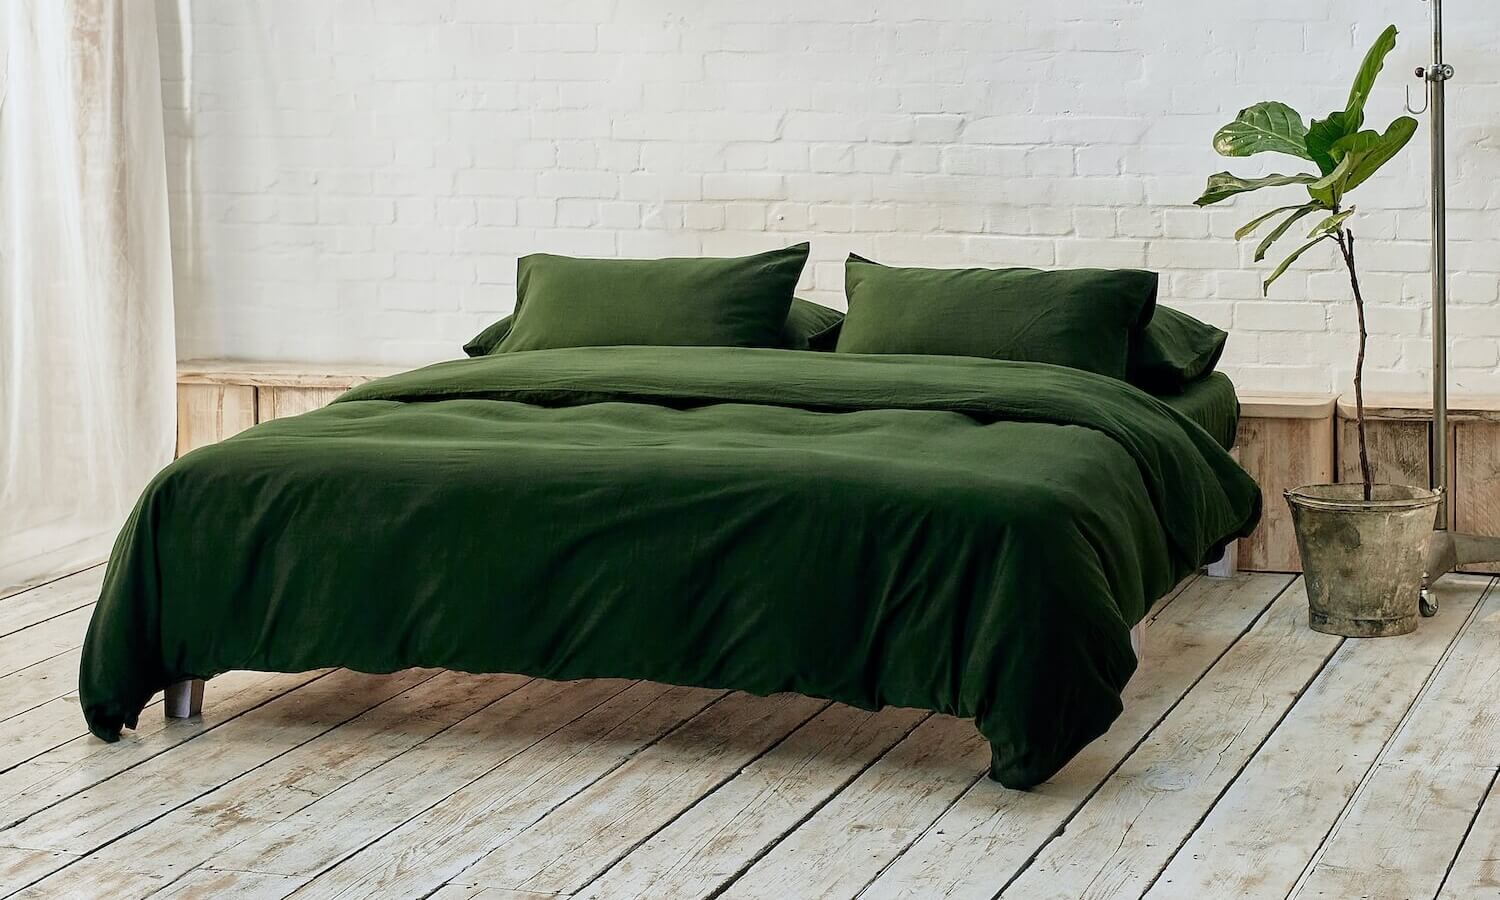 dark green duvet cover, two pillowcases, and bottom sheet on double bed in apartment with plant and wooden flooring